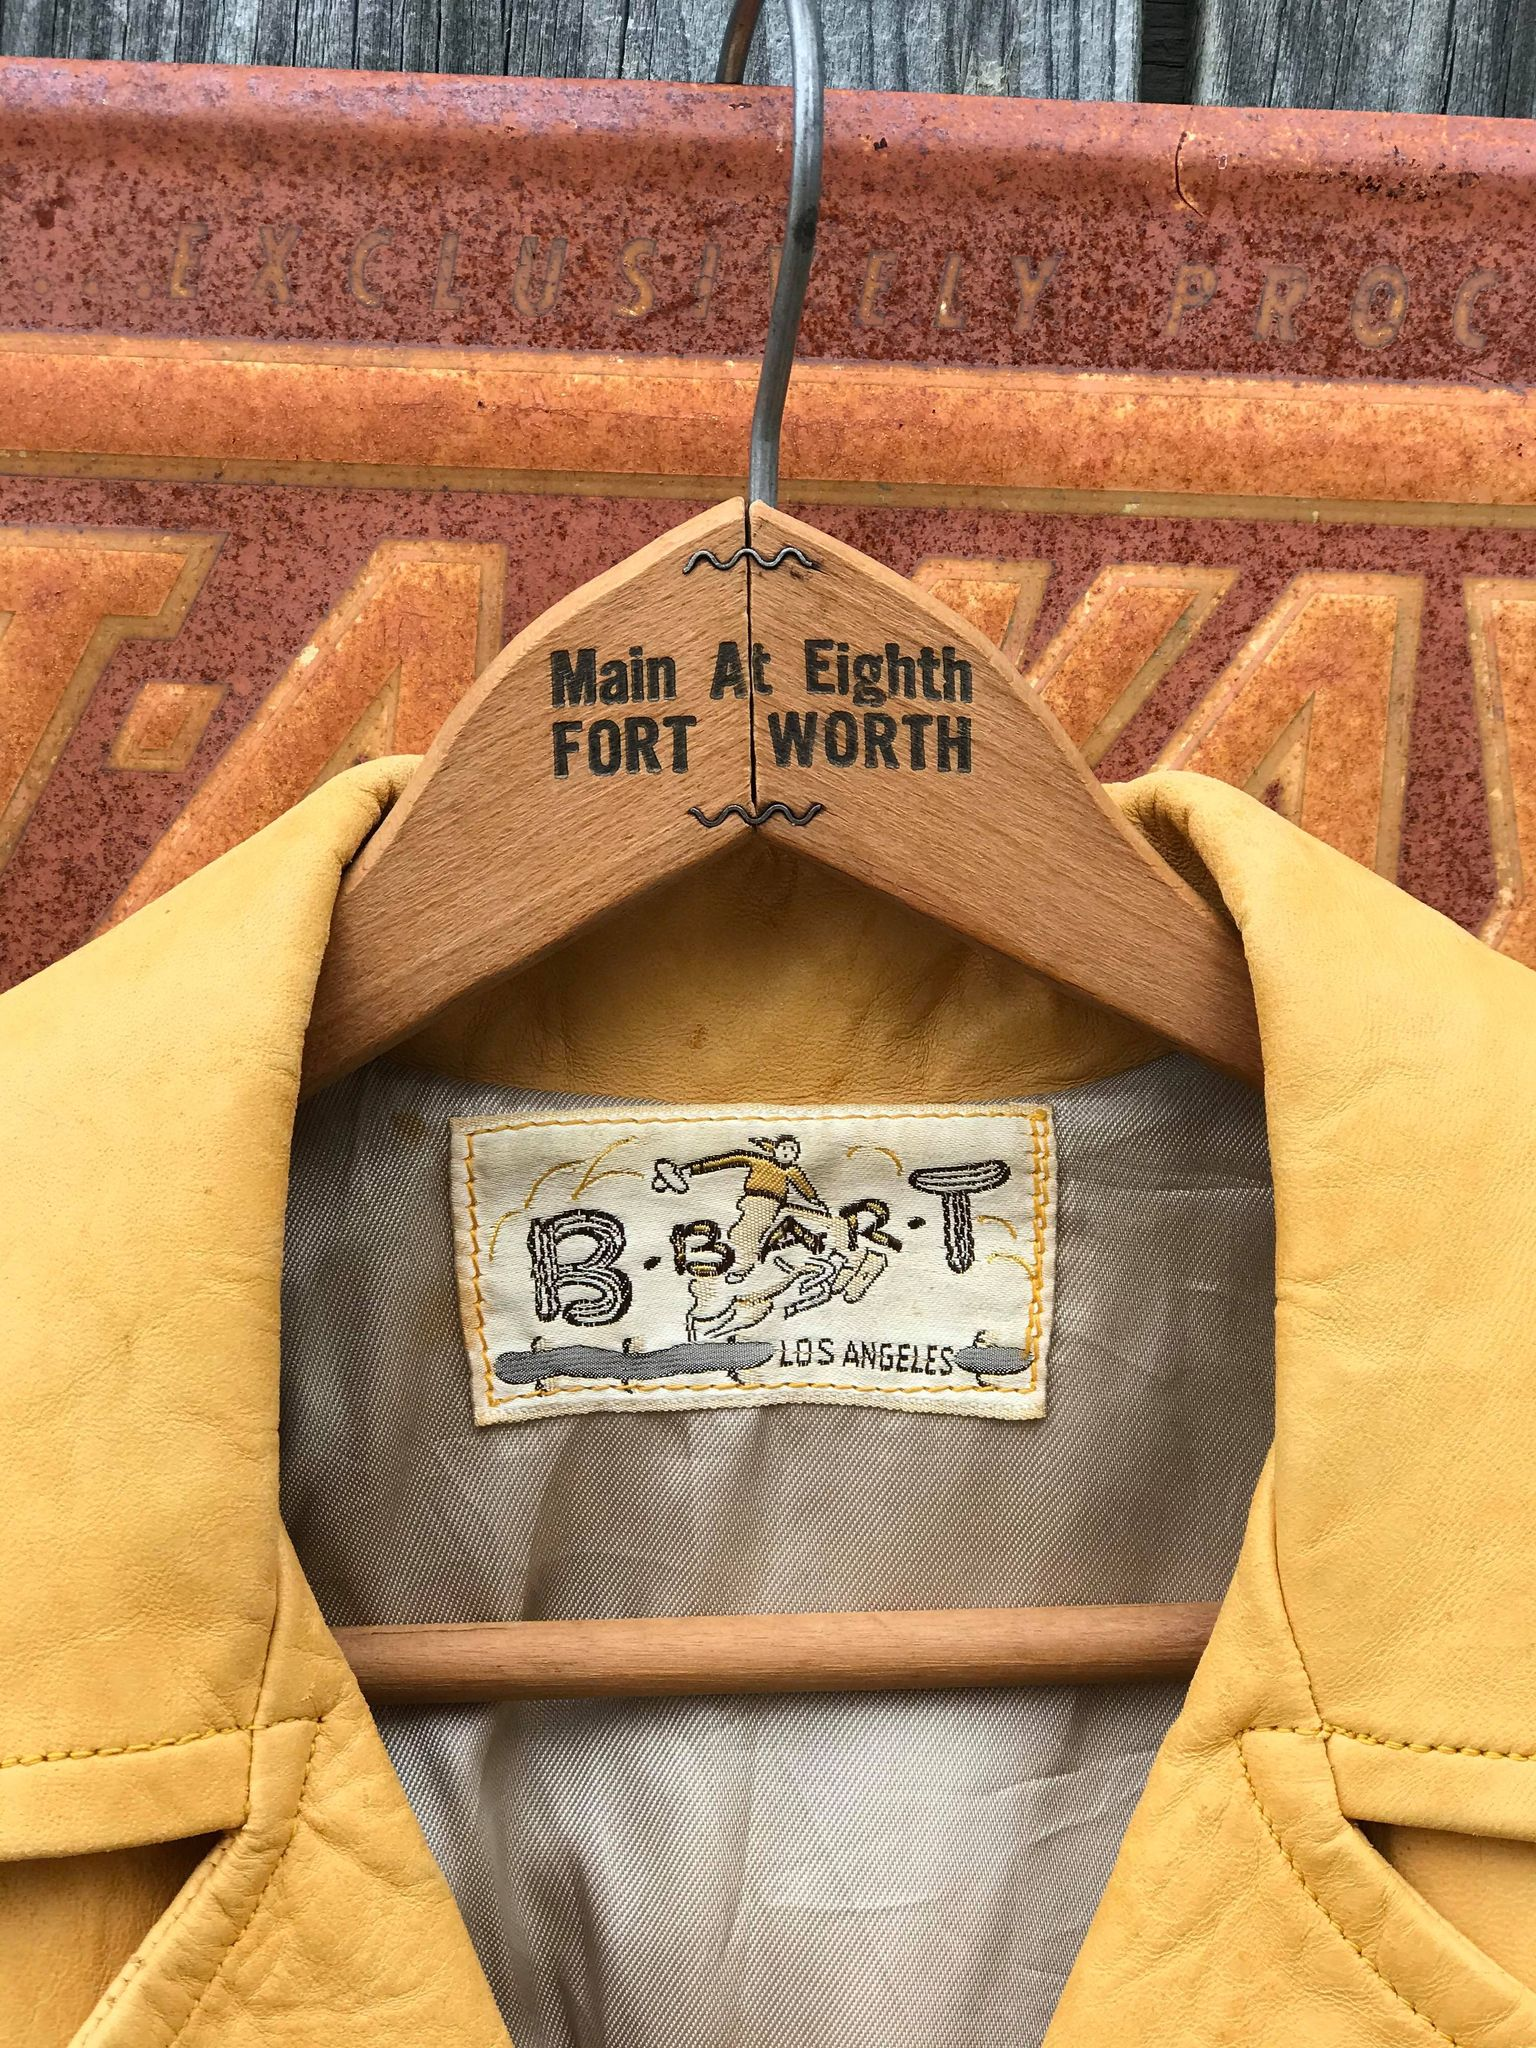 Vintage Soft Deerskin Jacket from the 1950's